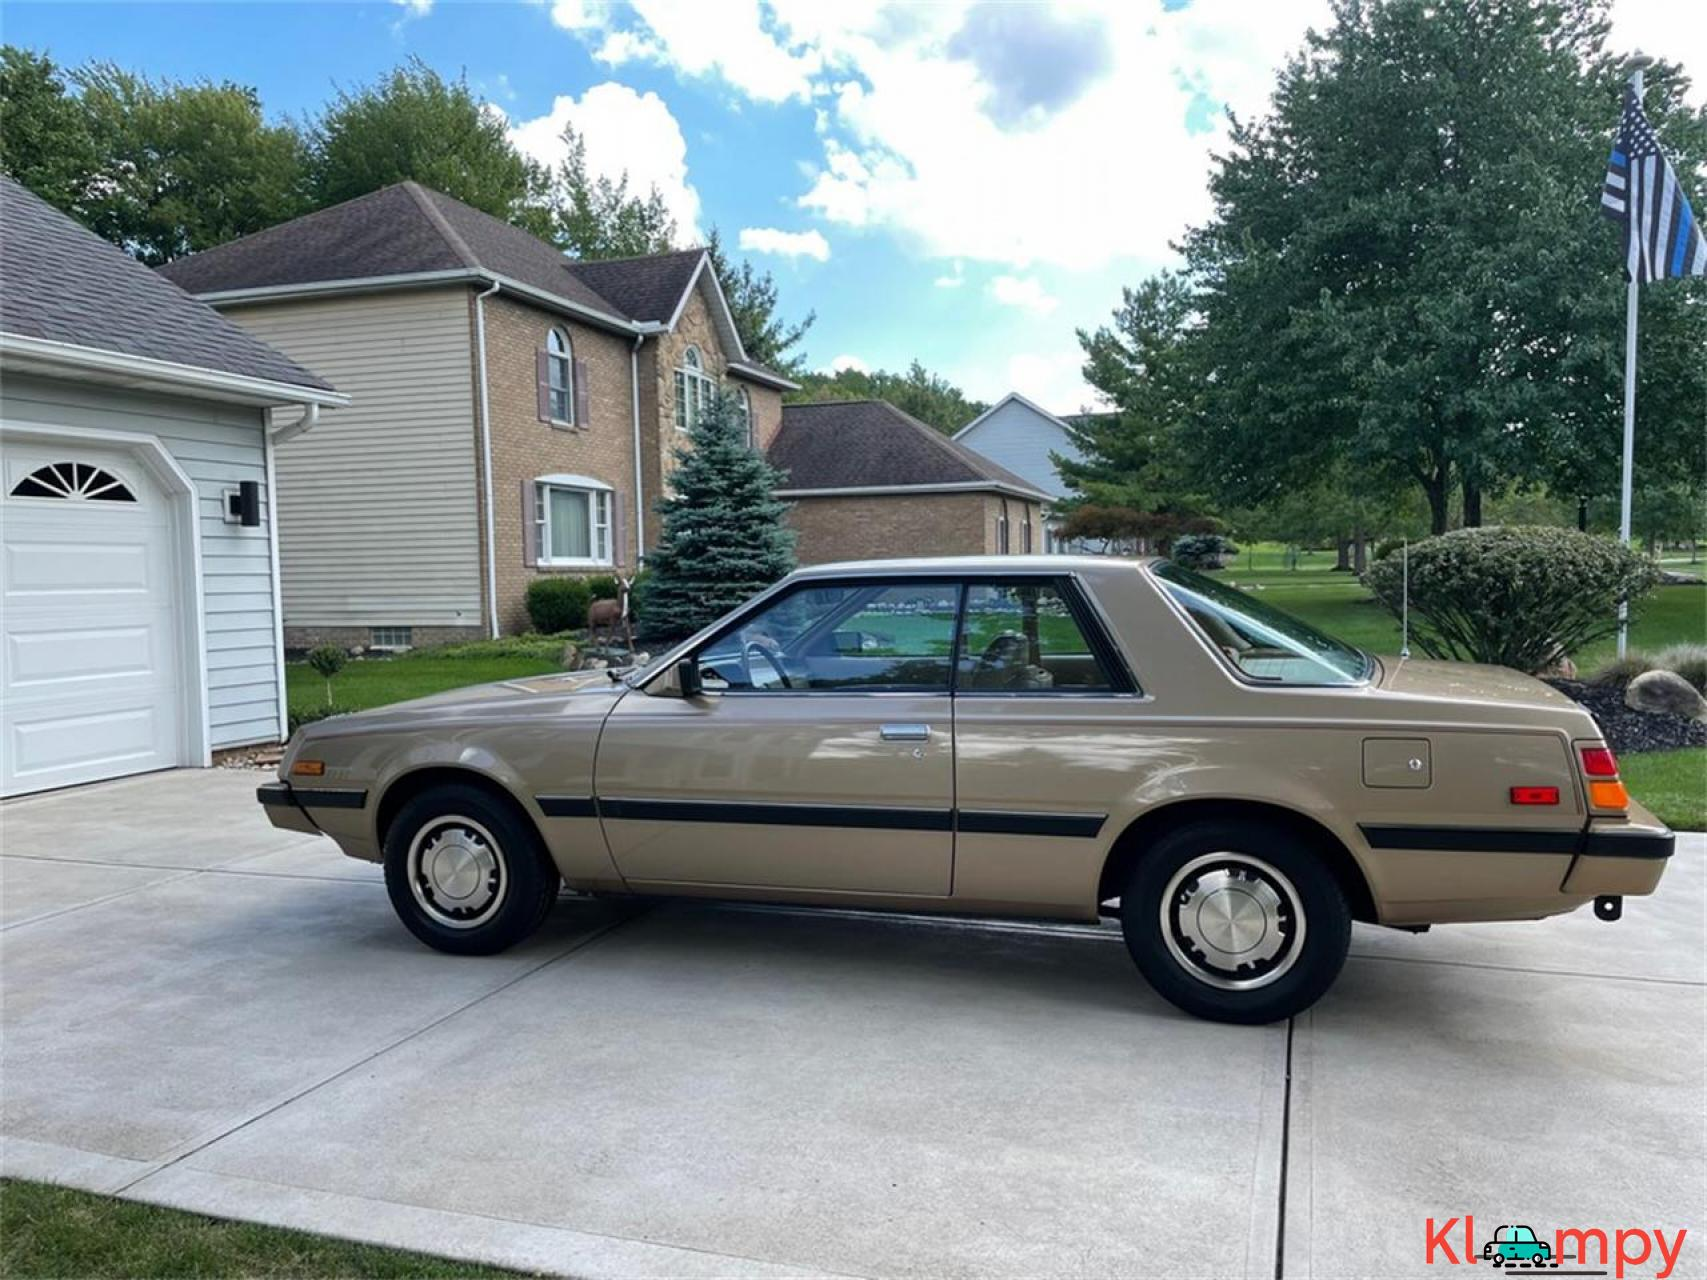 1983 Plymouth Sapporo 2.6L Engine - 4/18